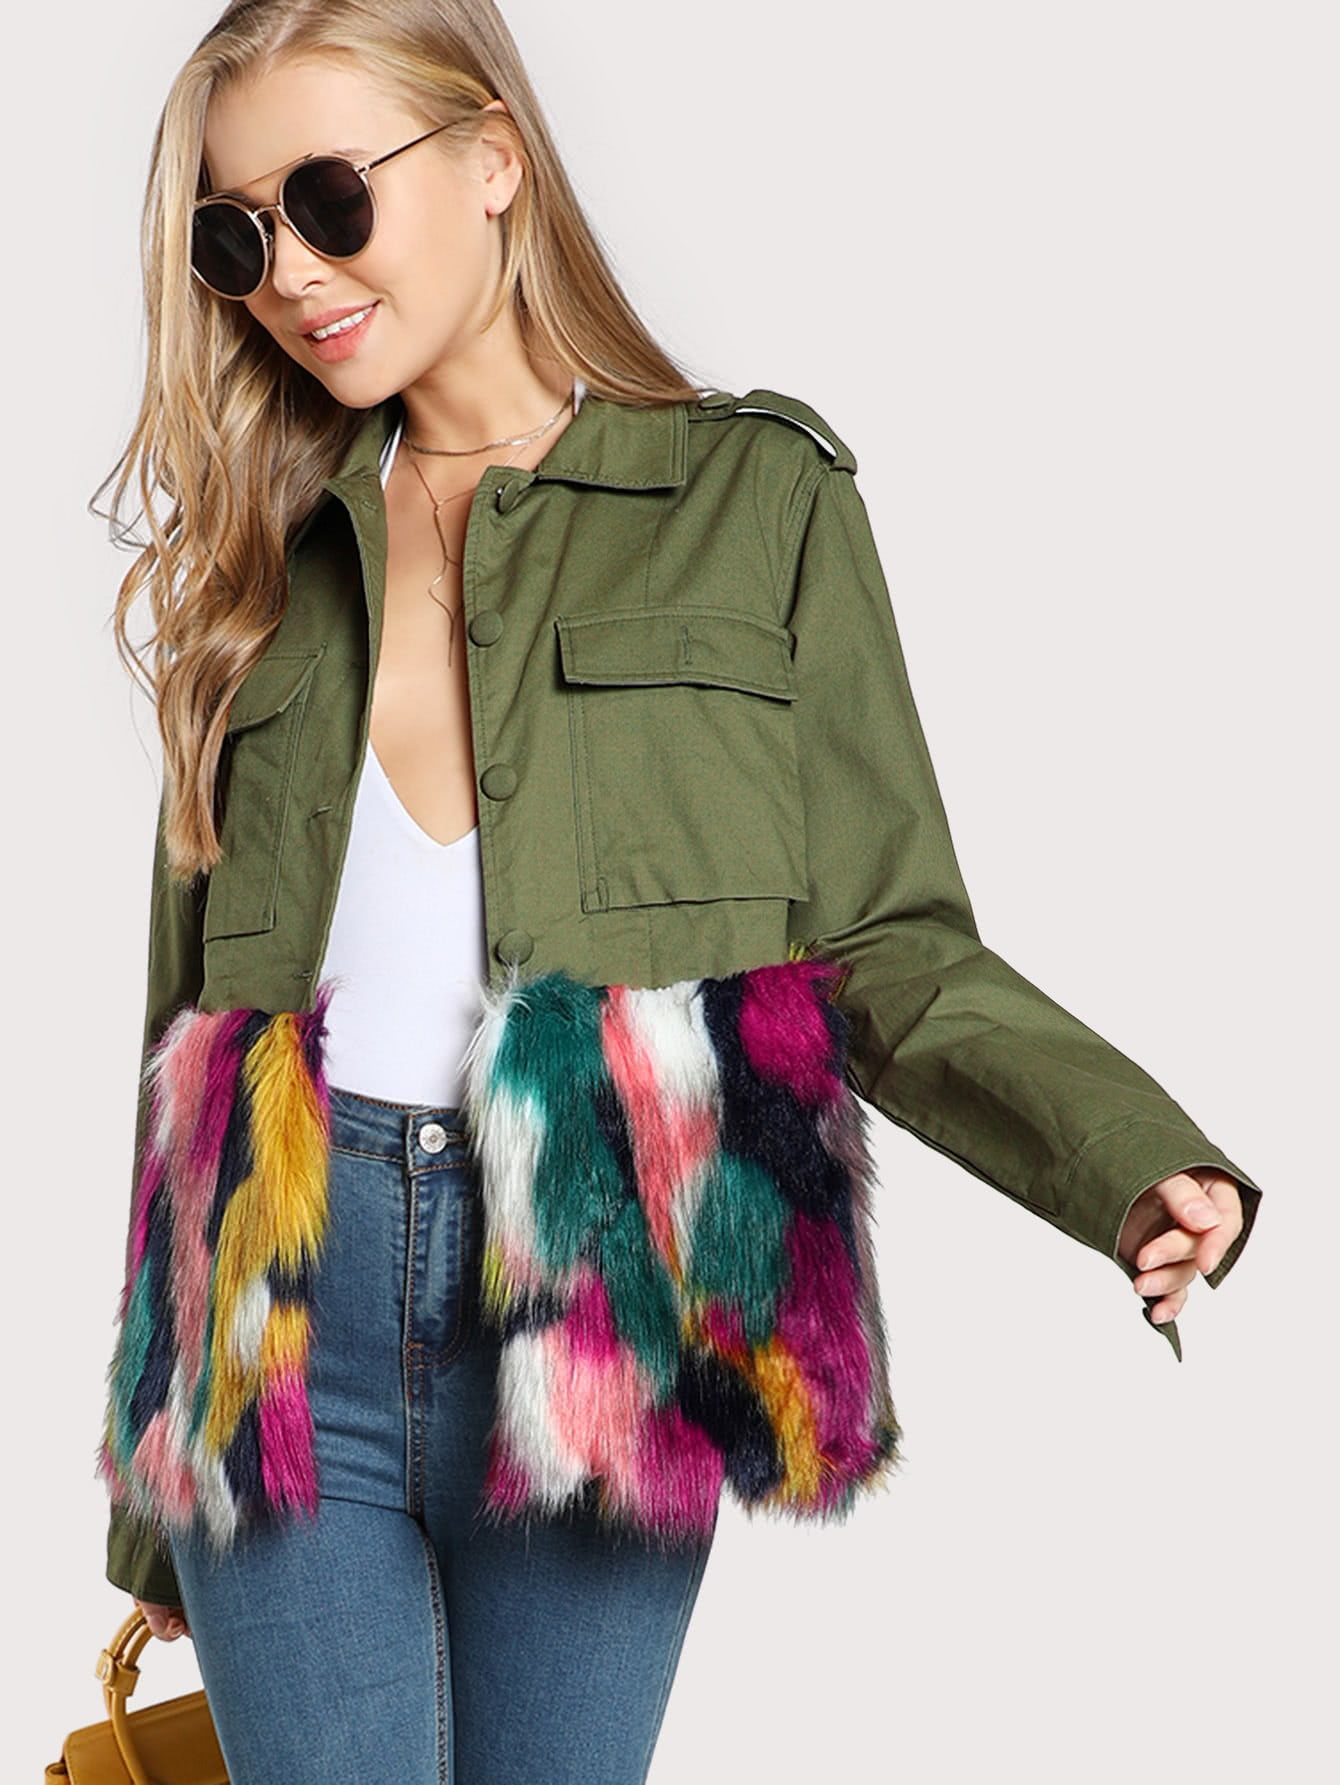 Colorful Faux Fur Trim Utility Jacket миша майский franz schubert songs without words mischa maisky daria hovora